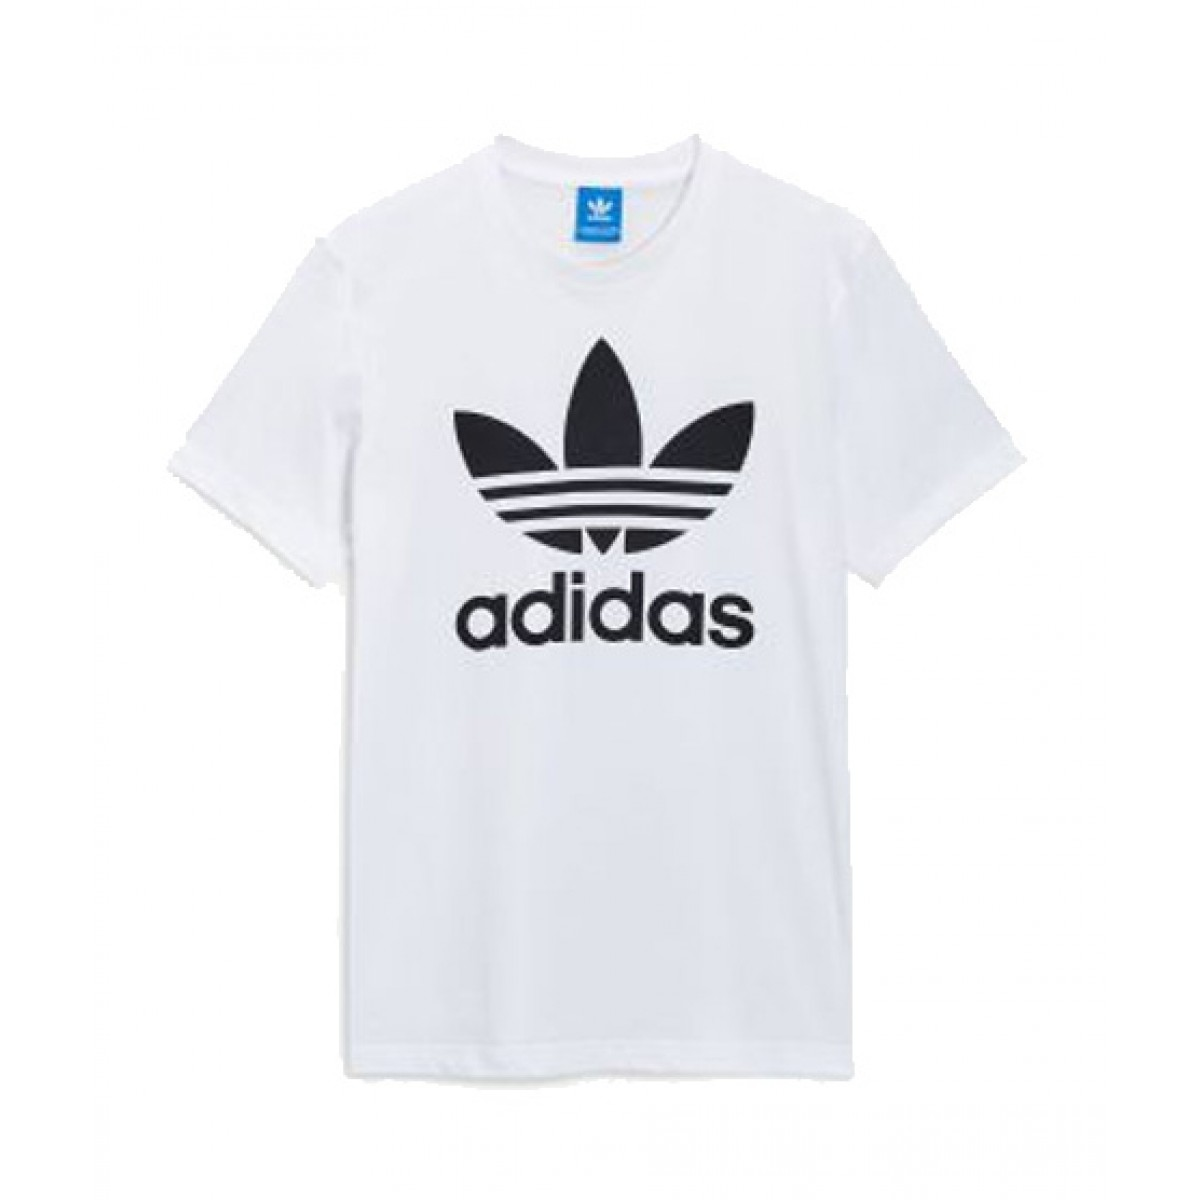 adidas t shirt and price